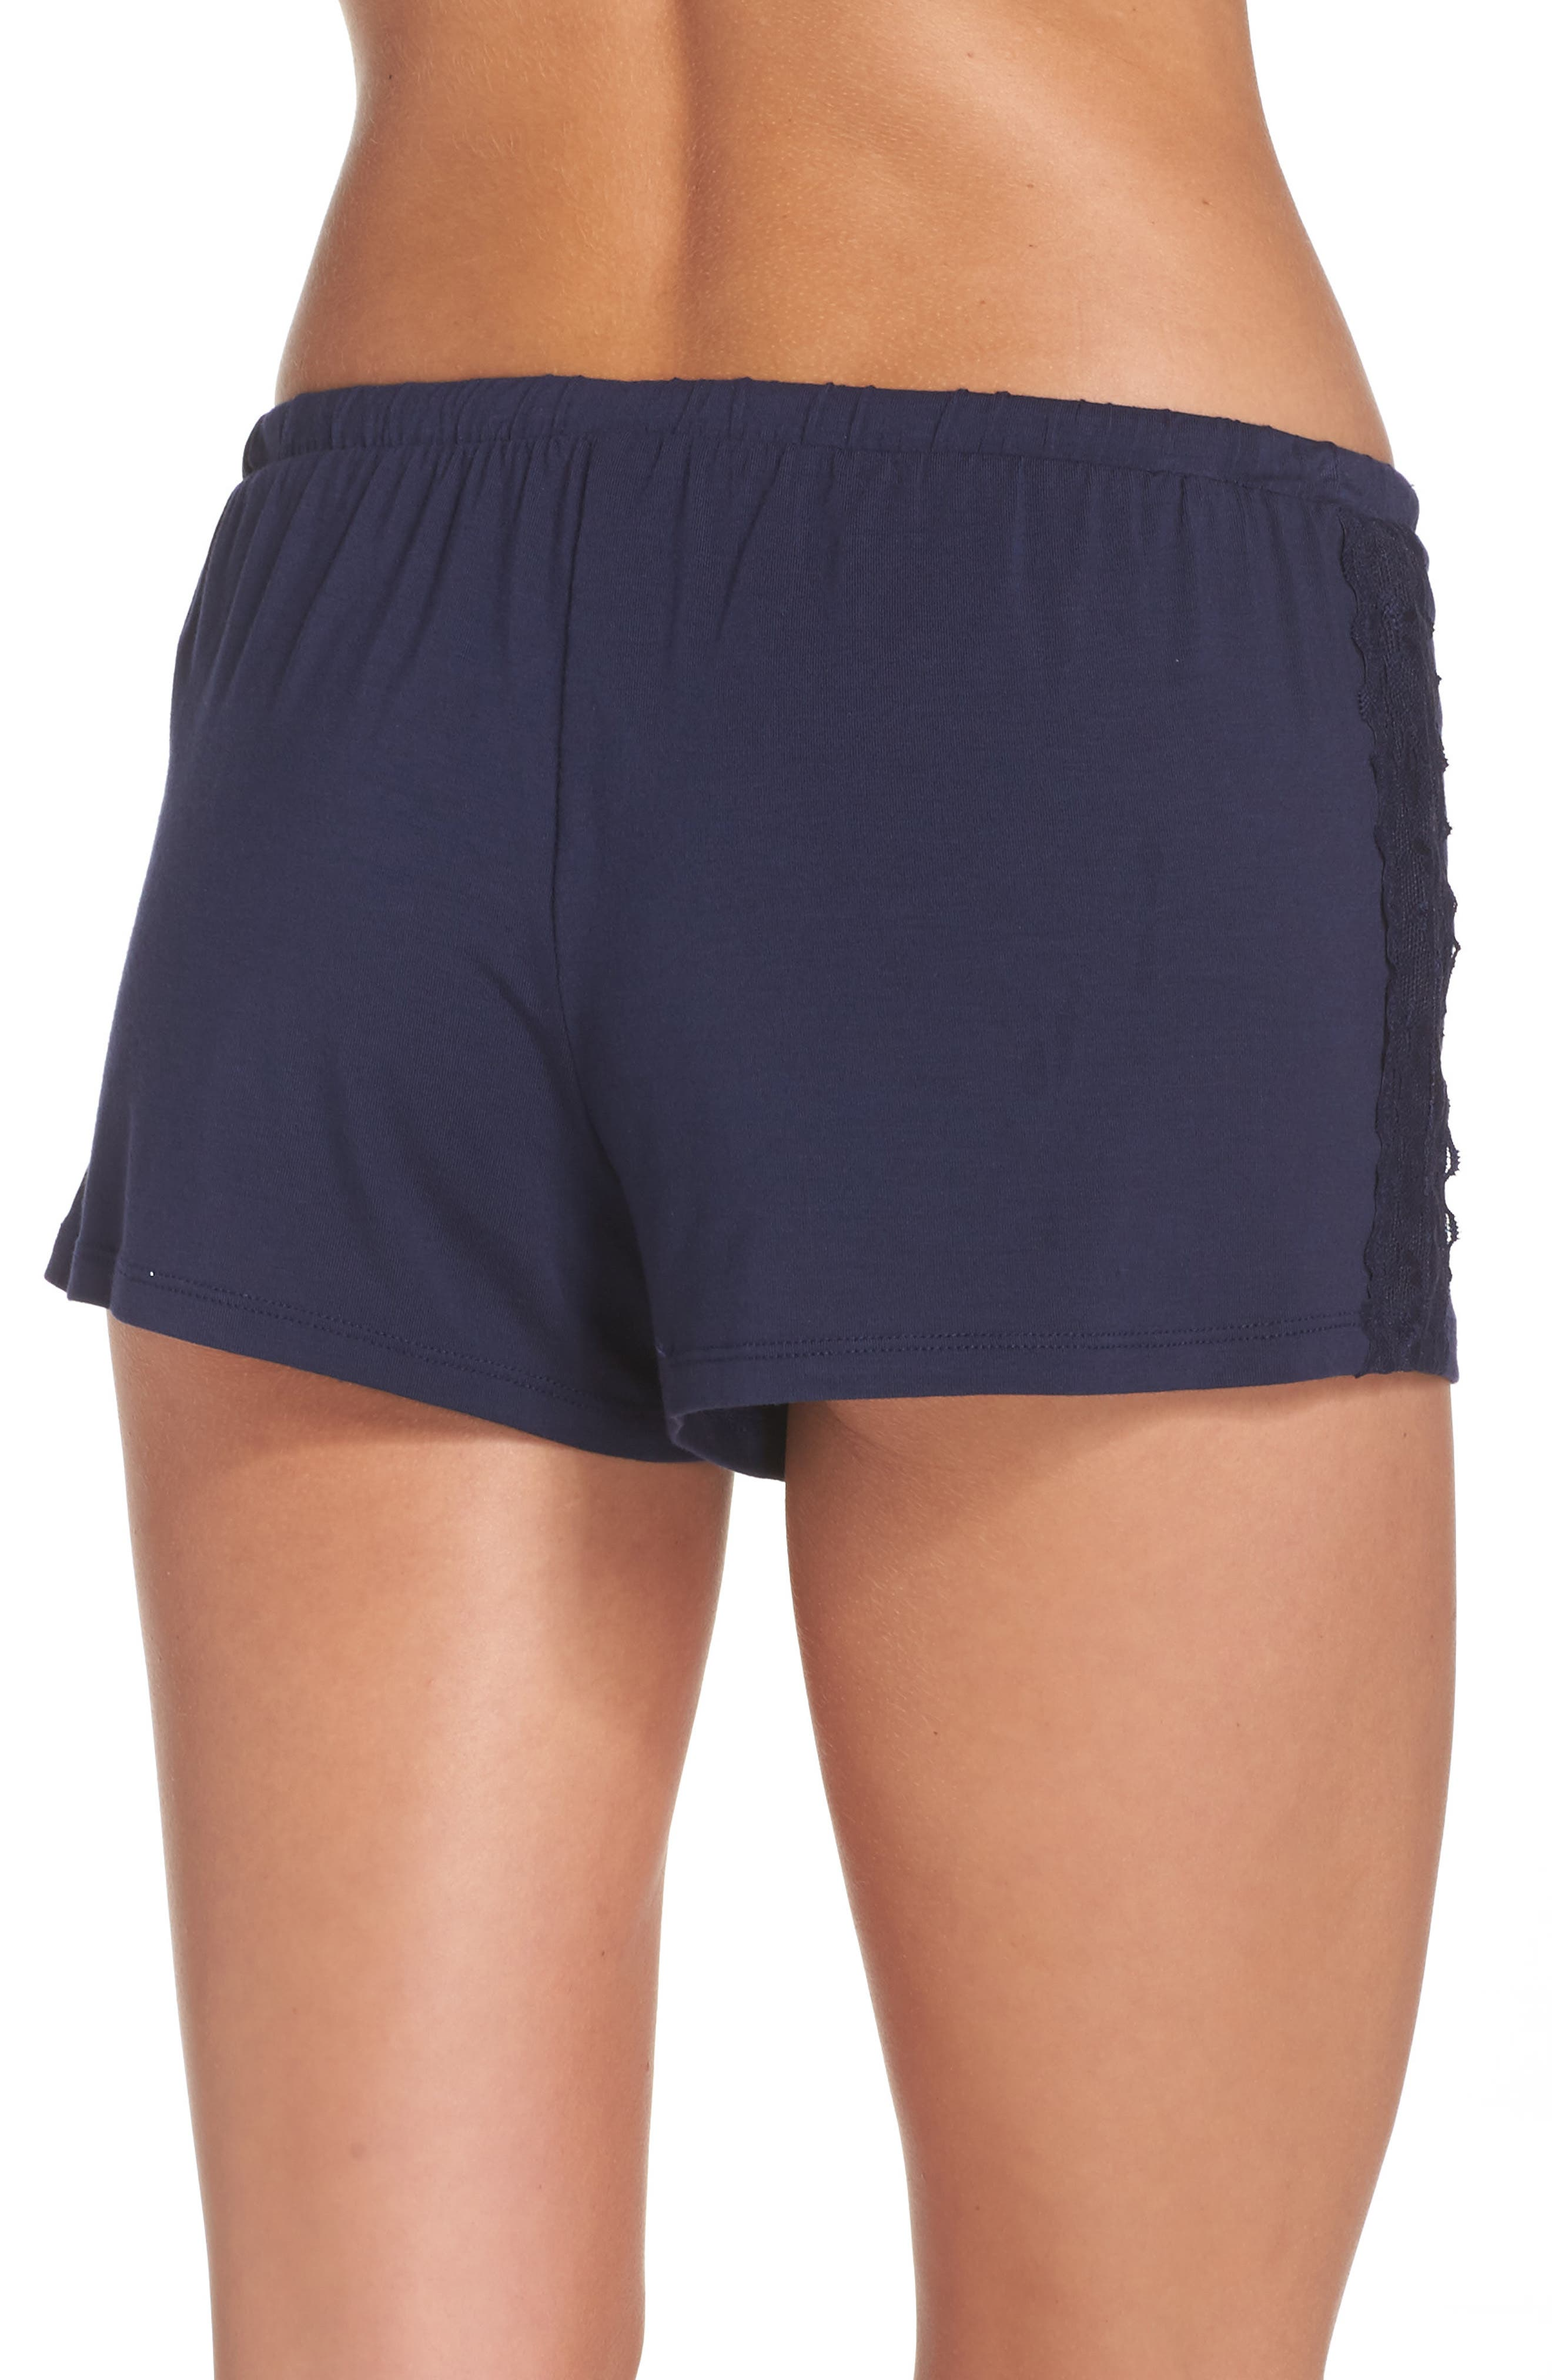 Lounge Shorts,                             Alternate thumbnail 2, color,                             Navy